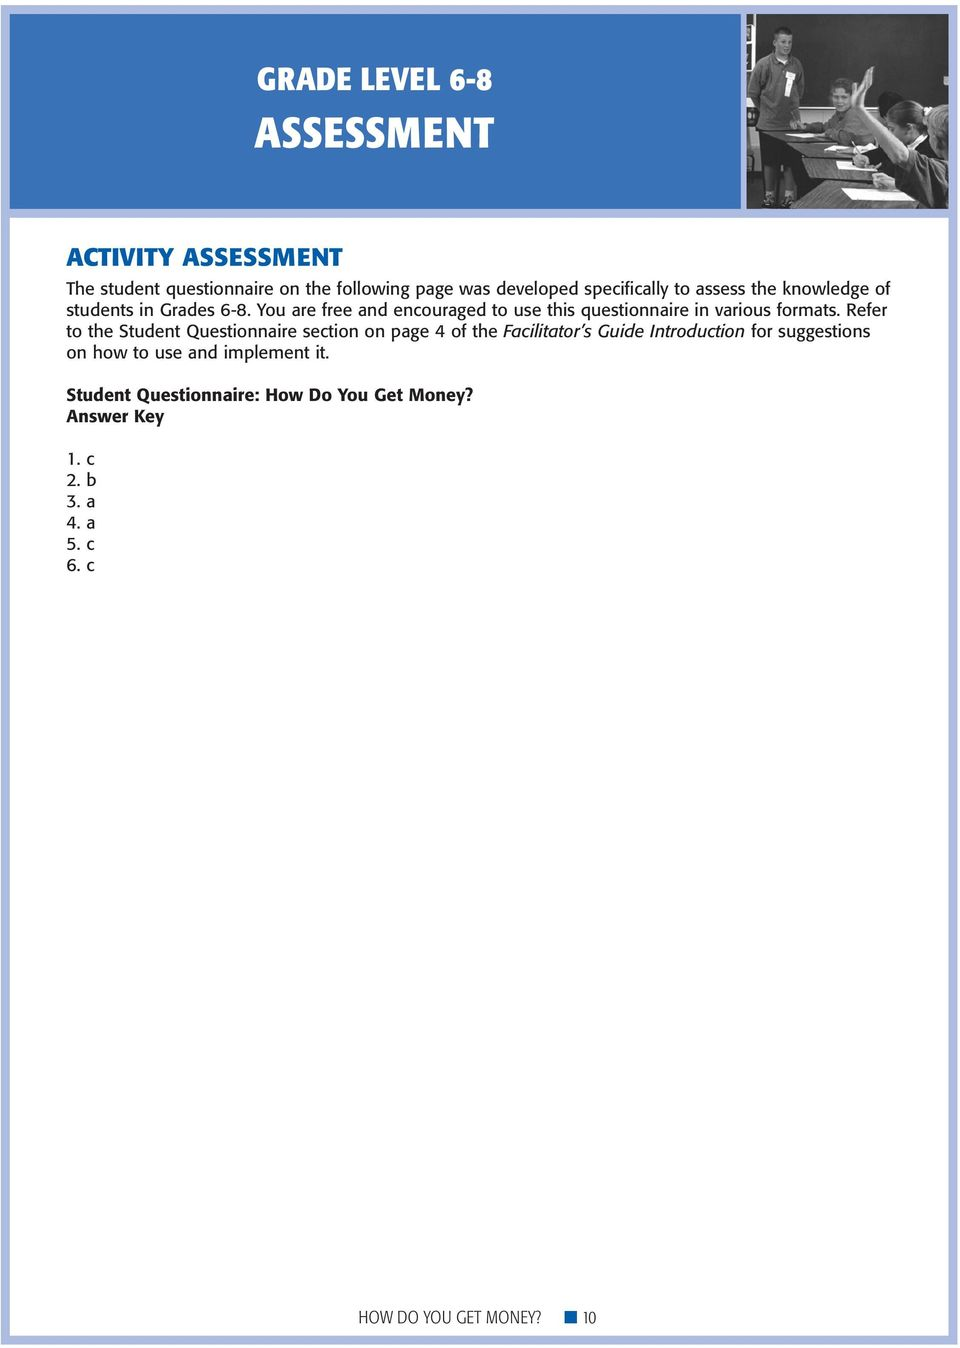 Refer to the Student Questionnaire section on page 4 of the Facilitator s Guide Introduction for suggestions on how to